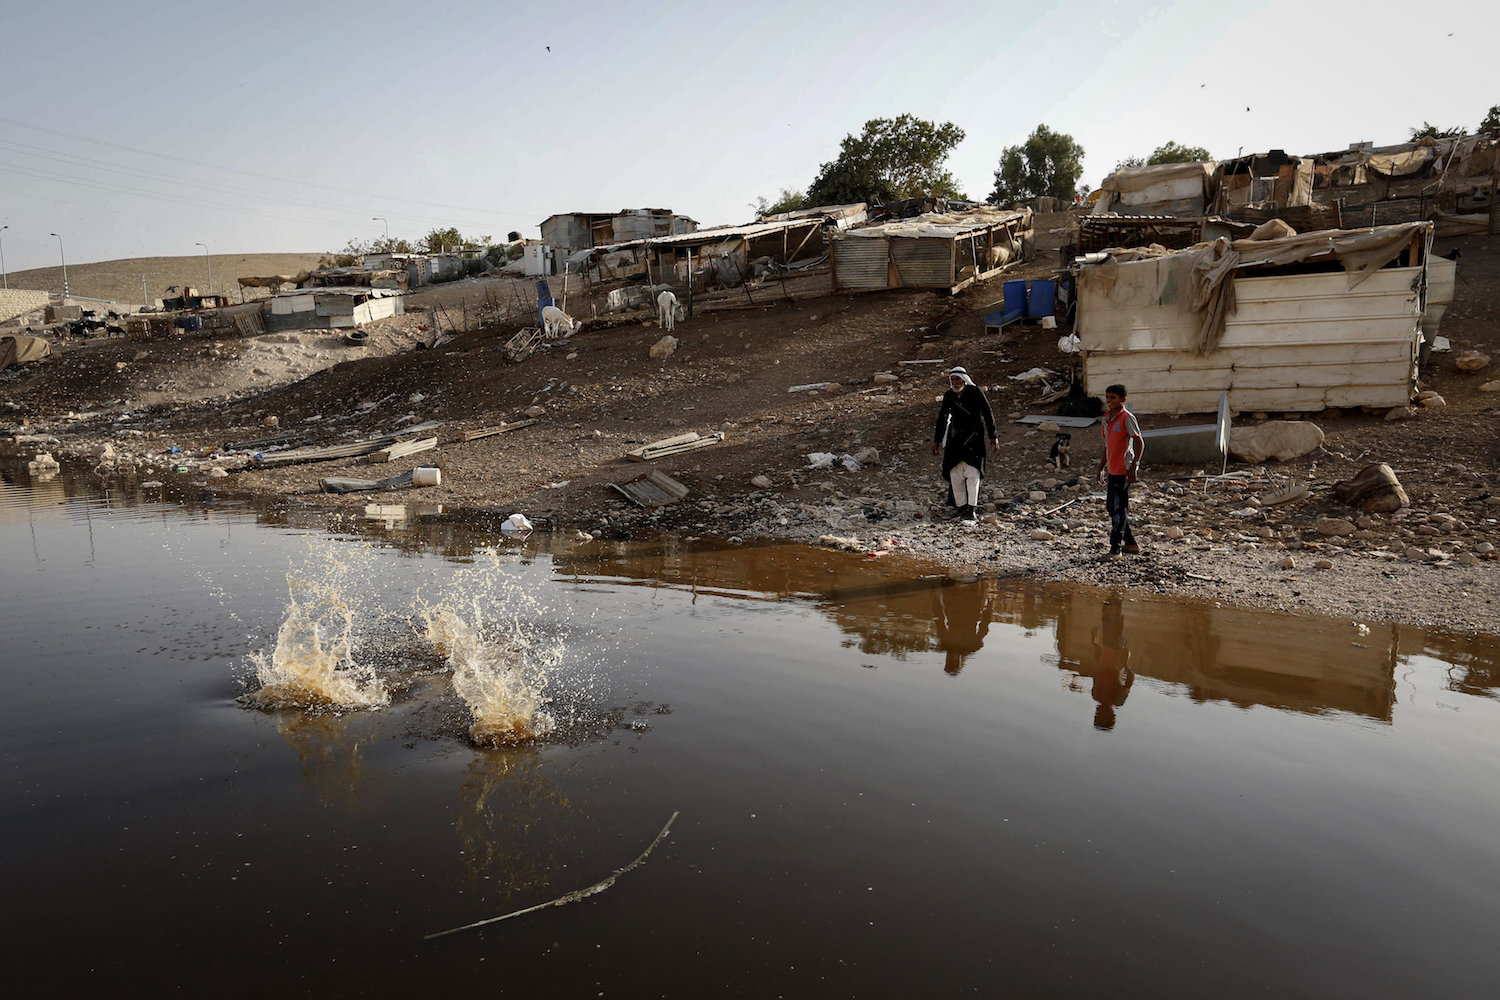 A wastewater pond is seen in the Palestinian Bedouin village of Khan al-Ahmar, which is slated for destruction by Israeli authorities, on October 2, 2018. (Wisam Hashlamoun/Flash90)